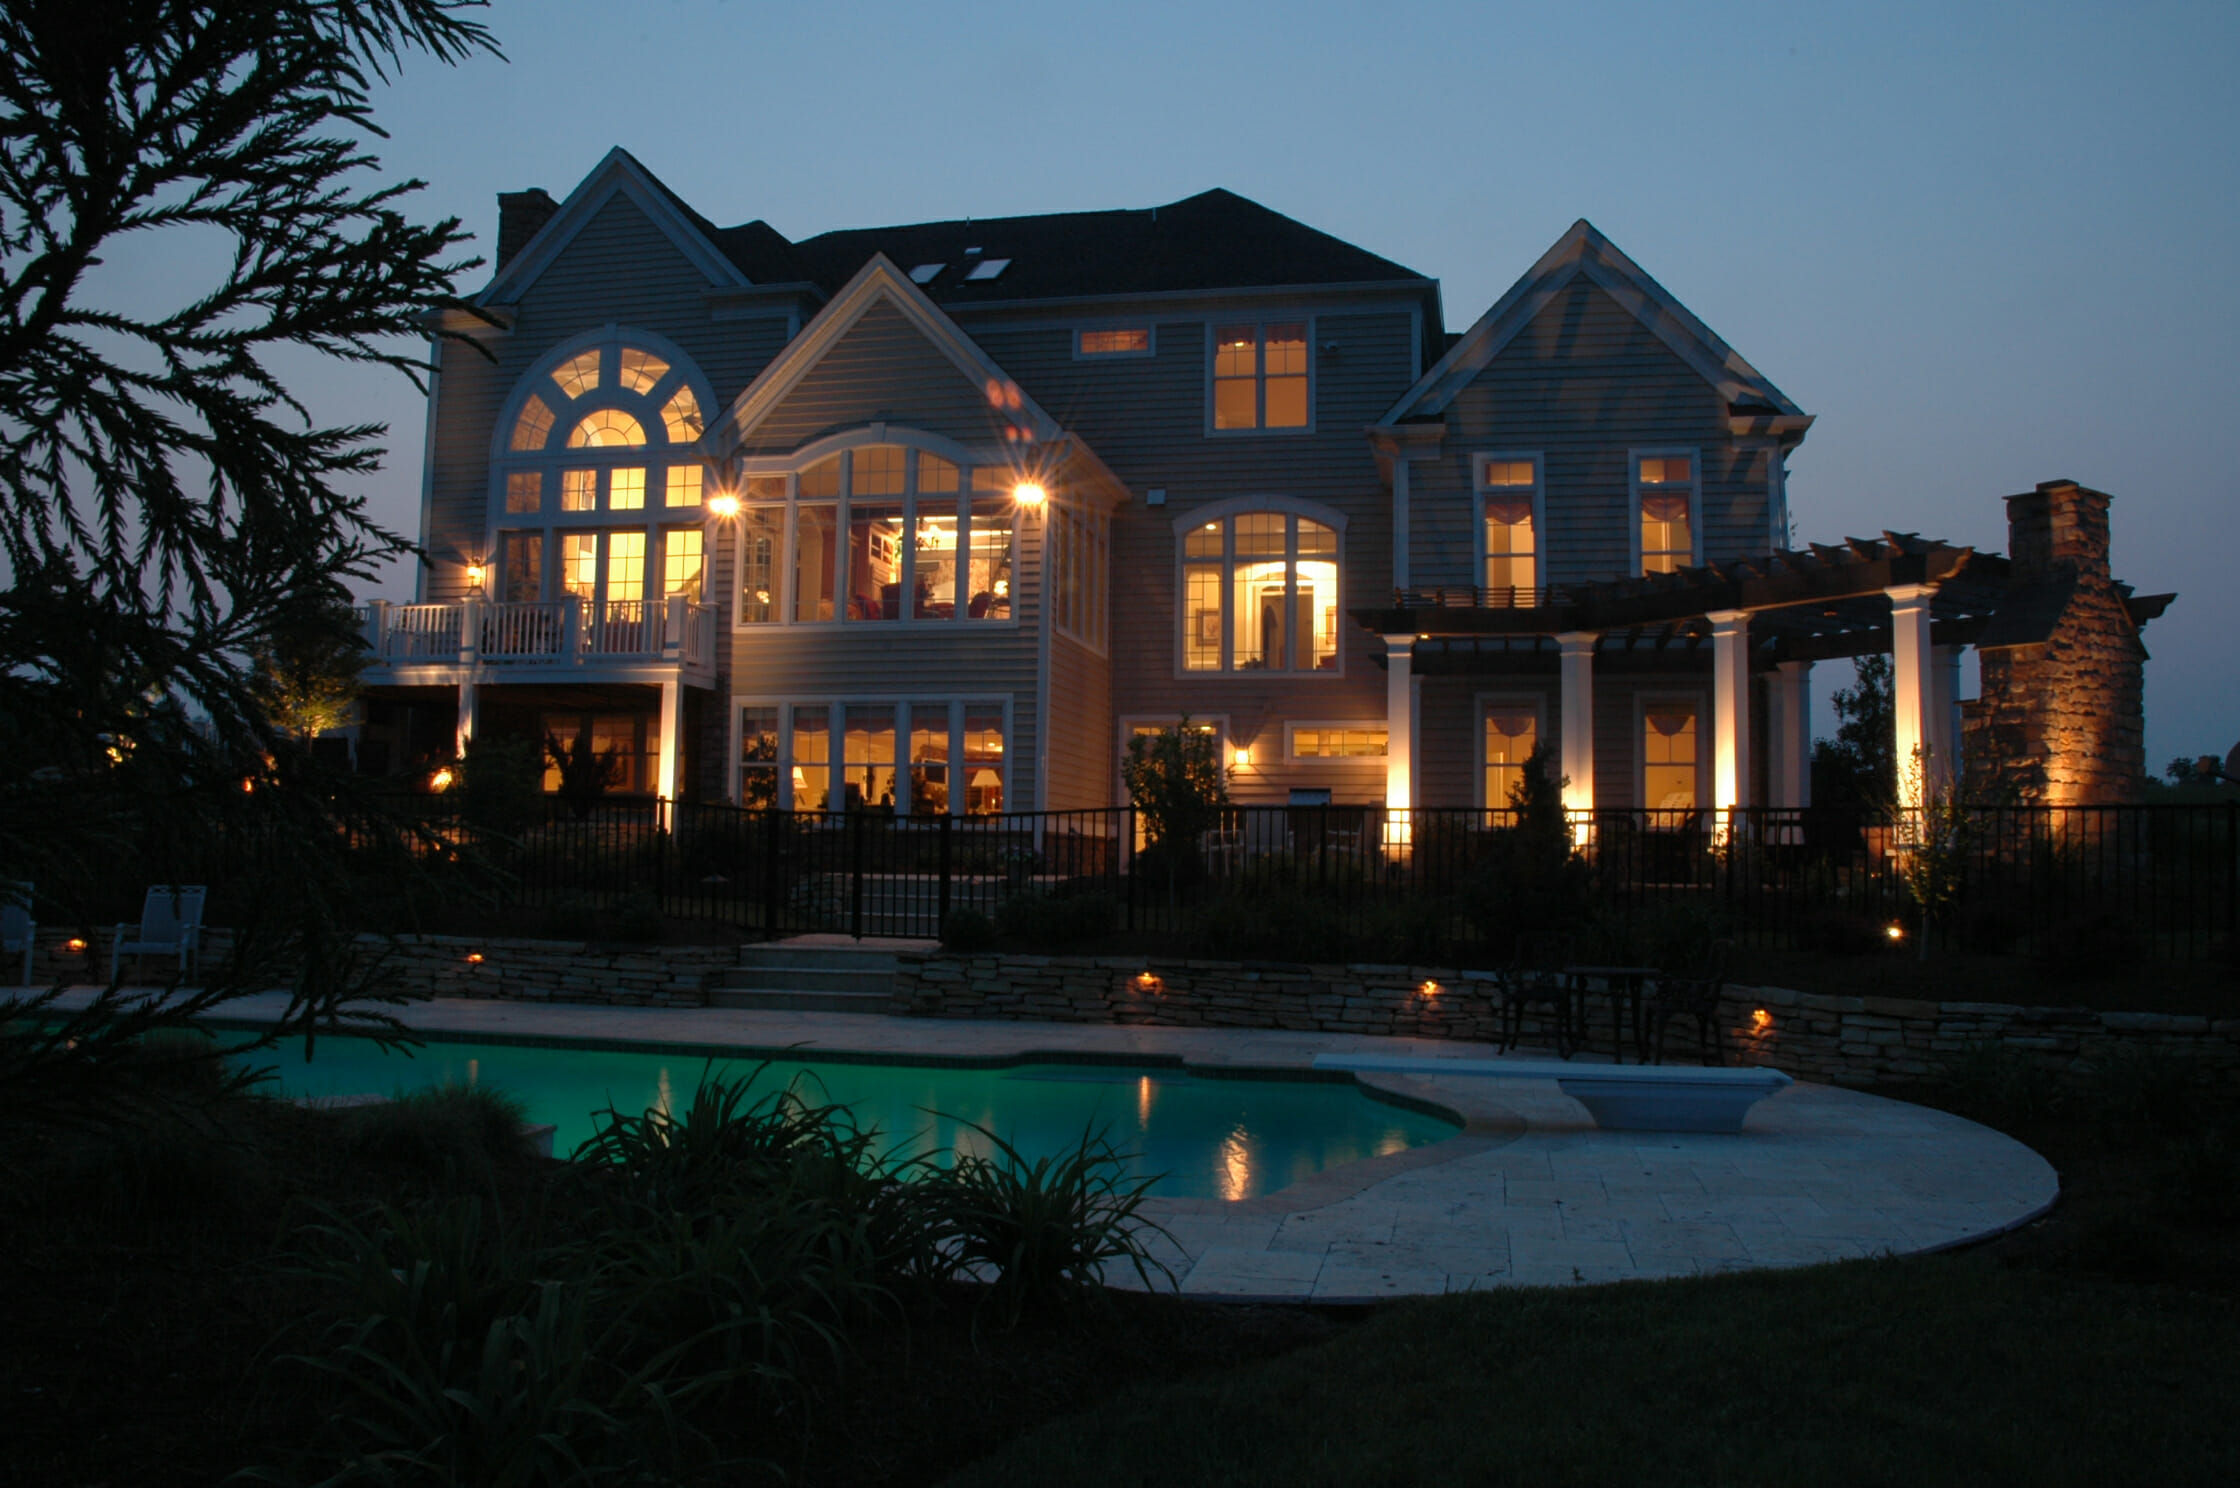 Fredericksburg Virginia's Custom Home Builder